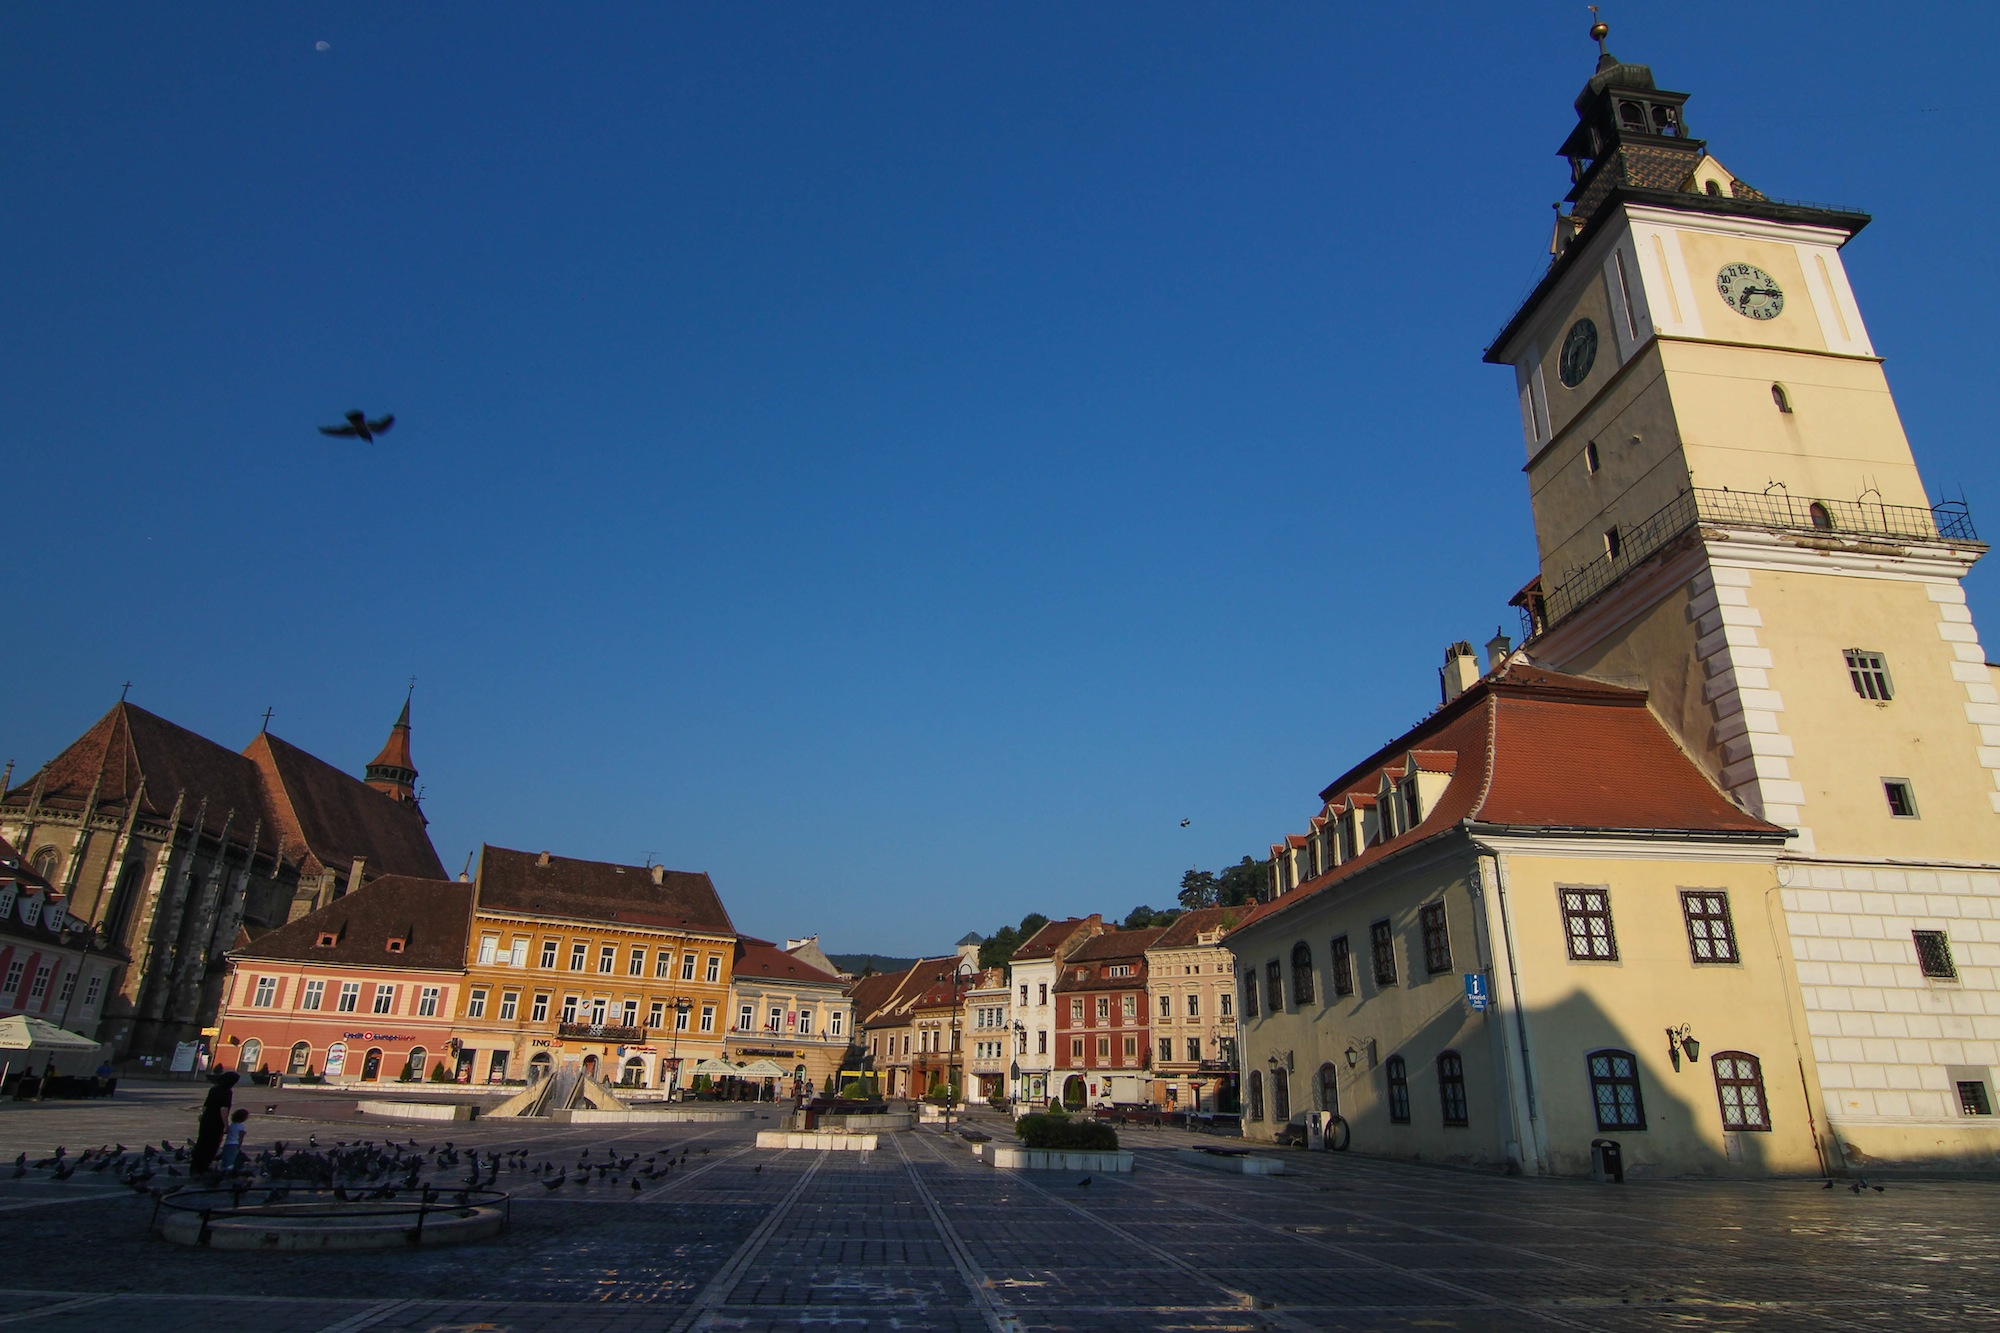 Dawn at the main Council Square - with the Black Church (left) and Old Town Hall (right)